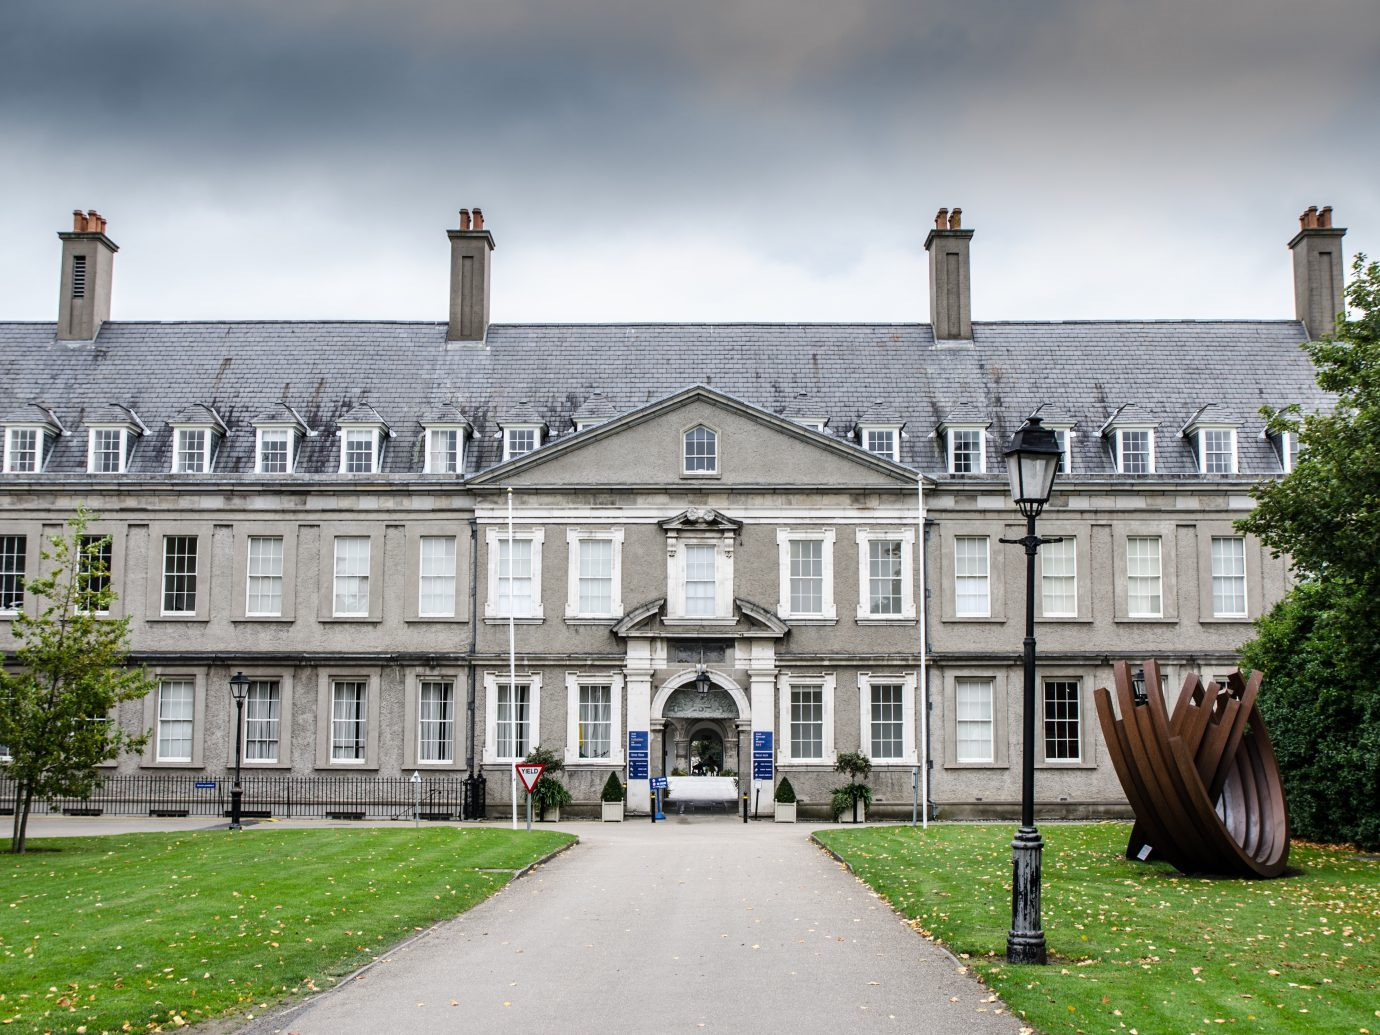 Facade of Dublin Museum of modern art during day of autumn with the foothpath leading to it.